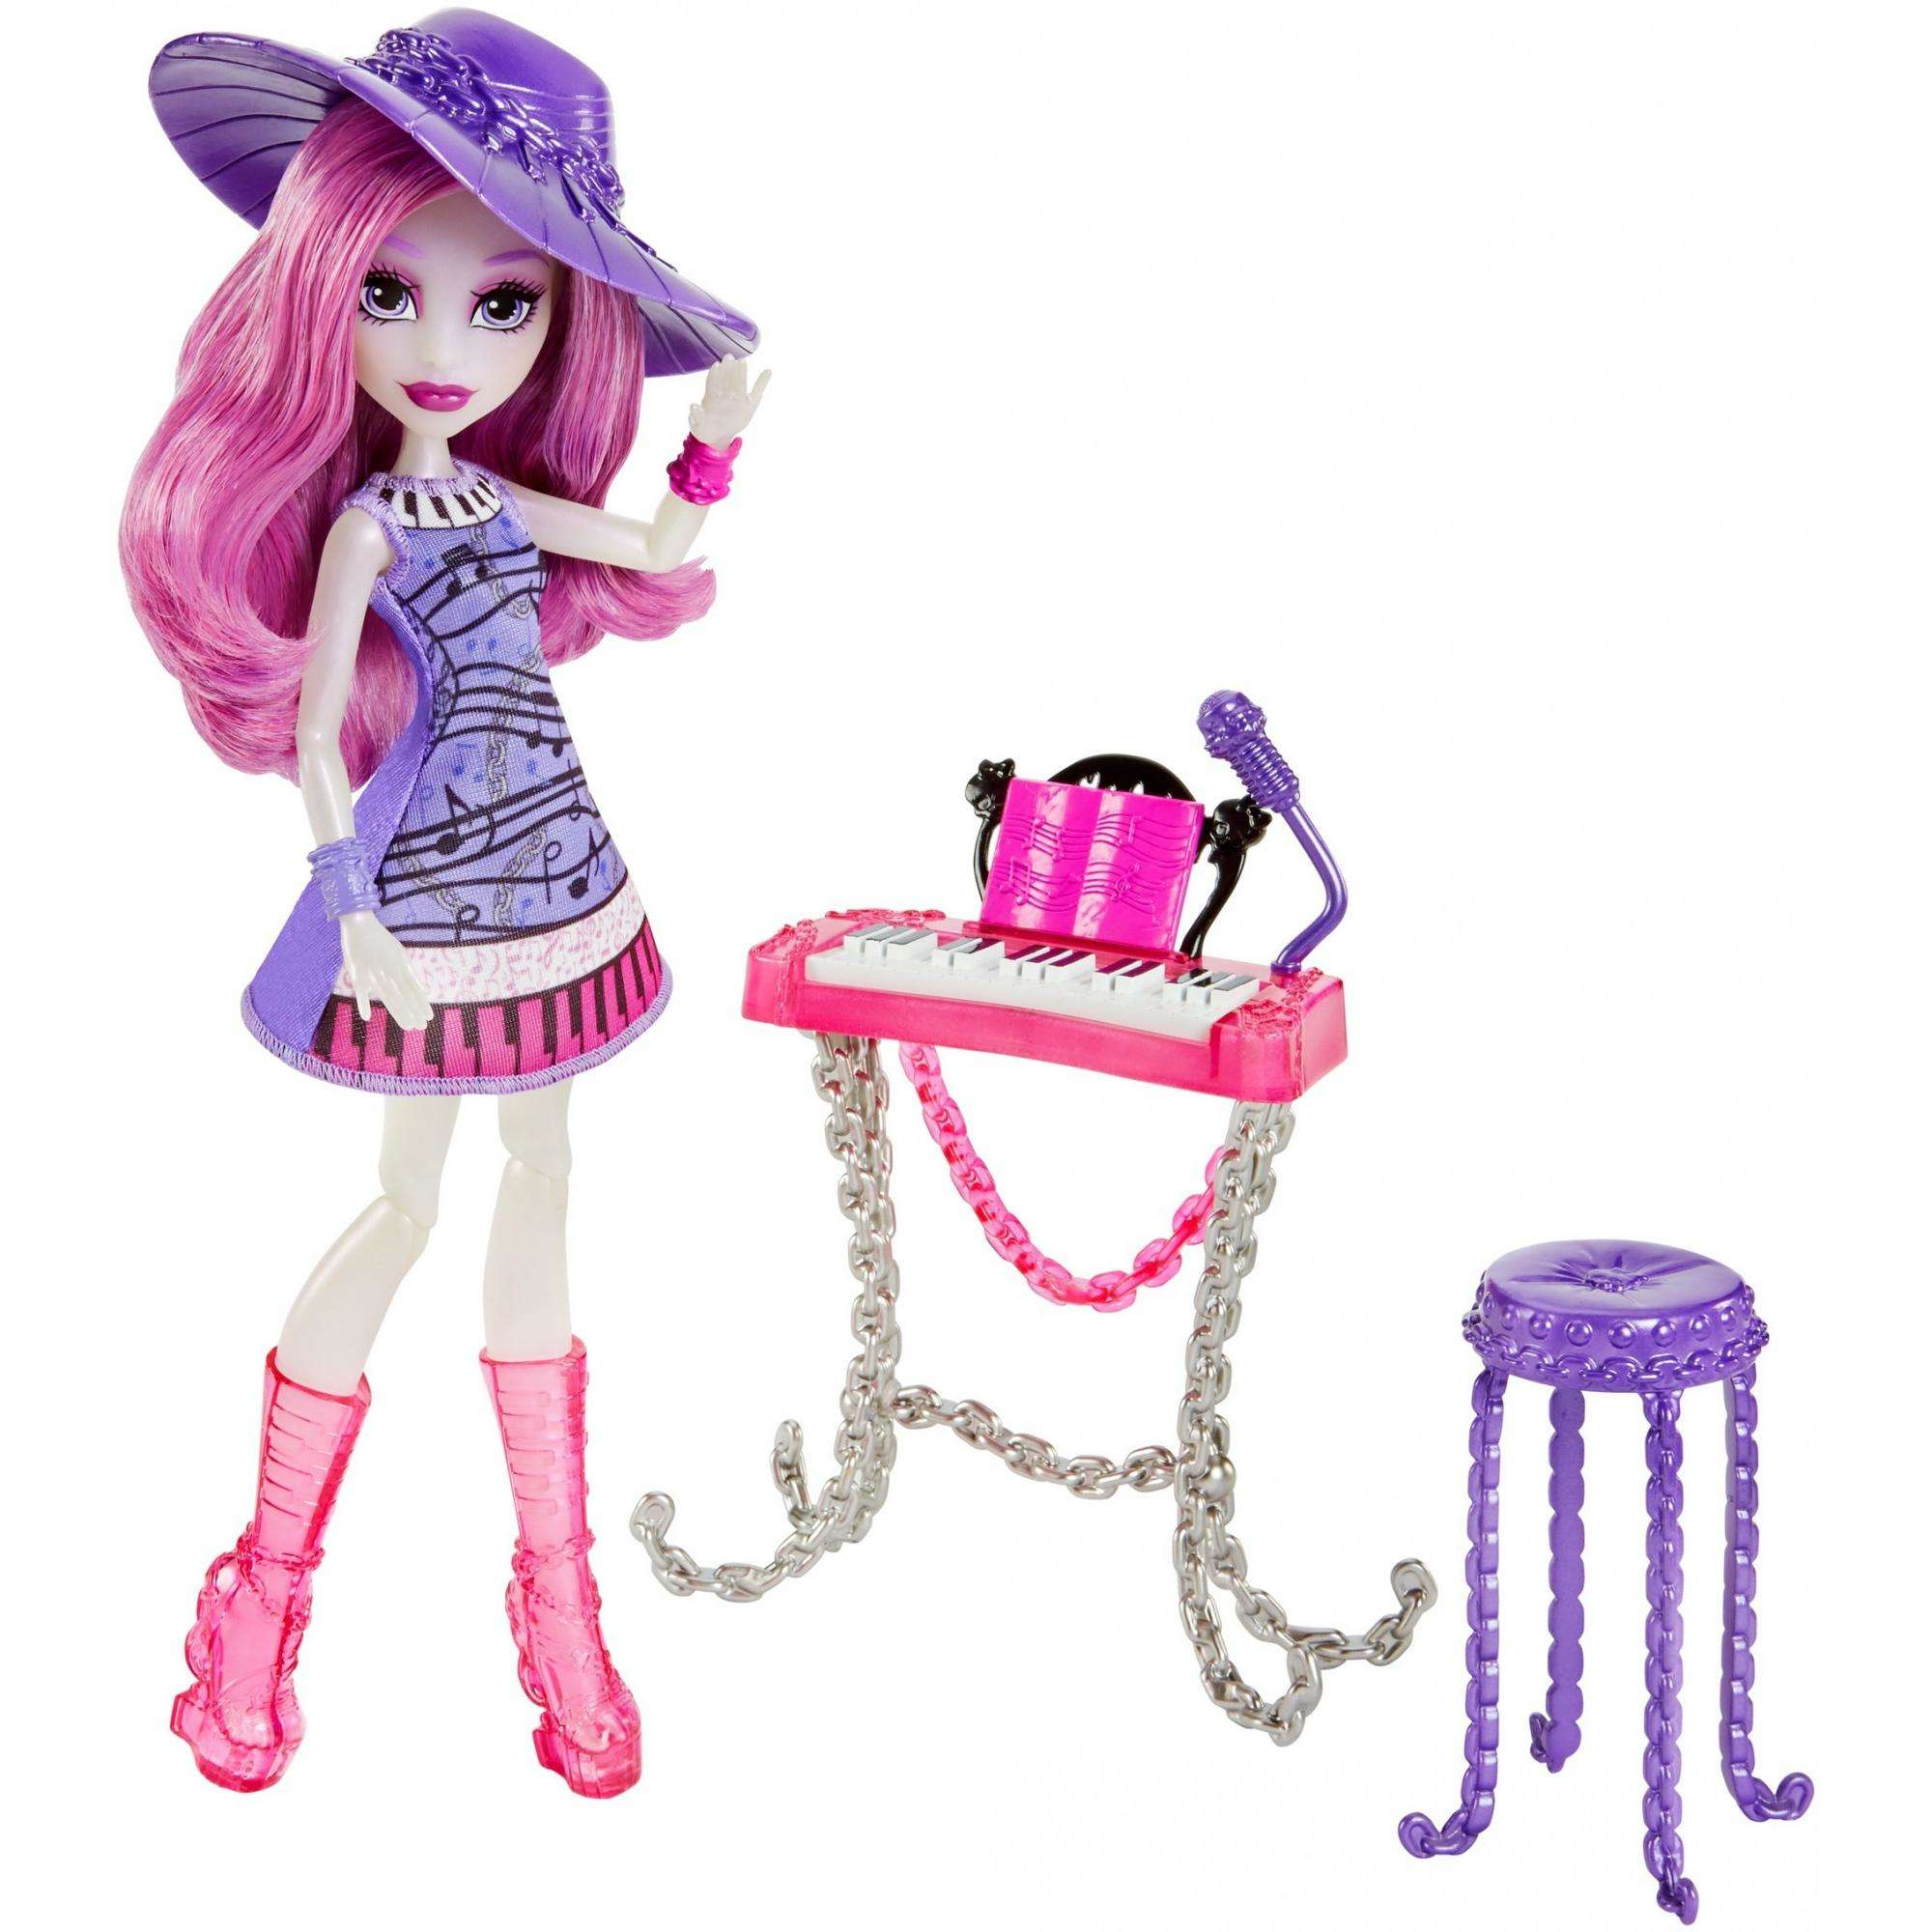 Monster High Ari Hauntington Doll & Accessory by MATTEL INC.